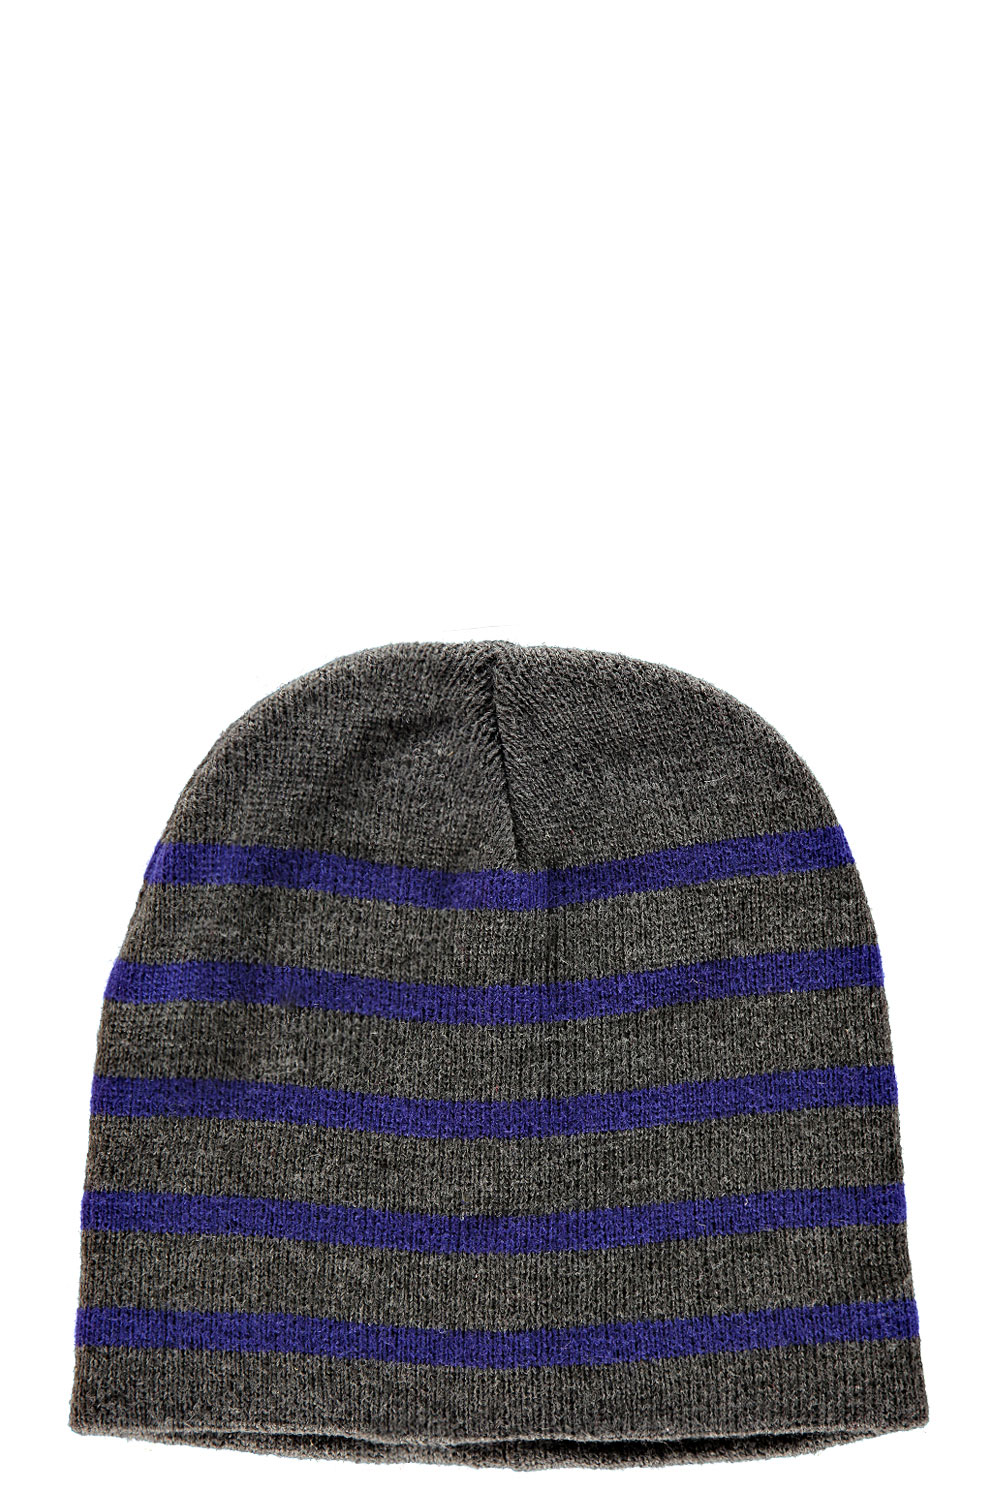 Boohoo-Mens-Striped-Beanie-Hat-One-Size